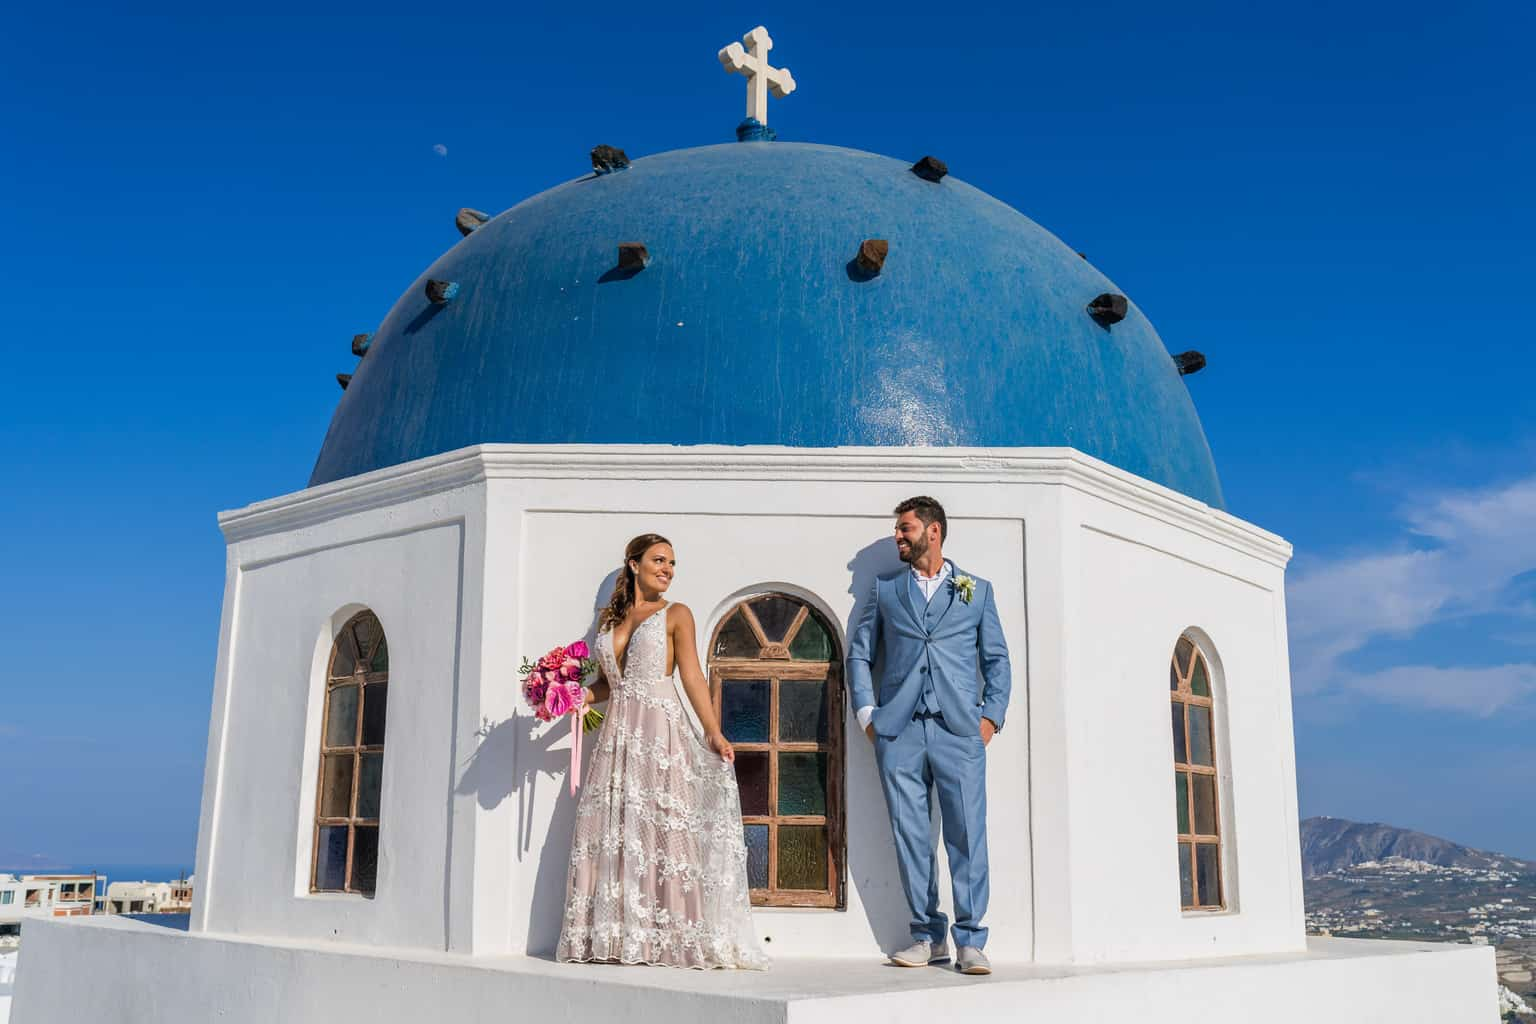 Destination-wedding-grecia-elopment-wedding-fotografia-life-click-studioLFC185of185